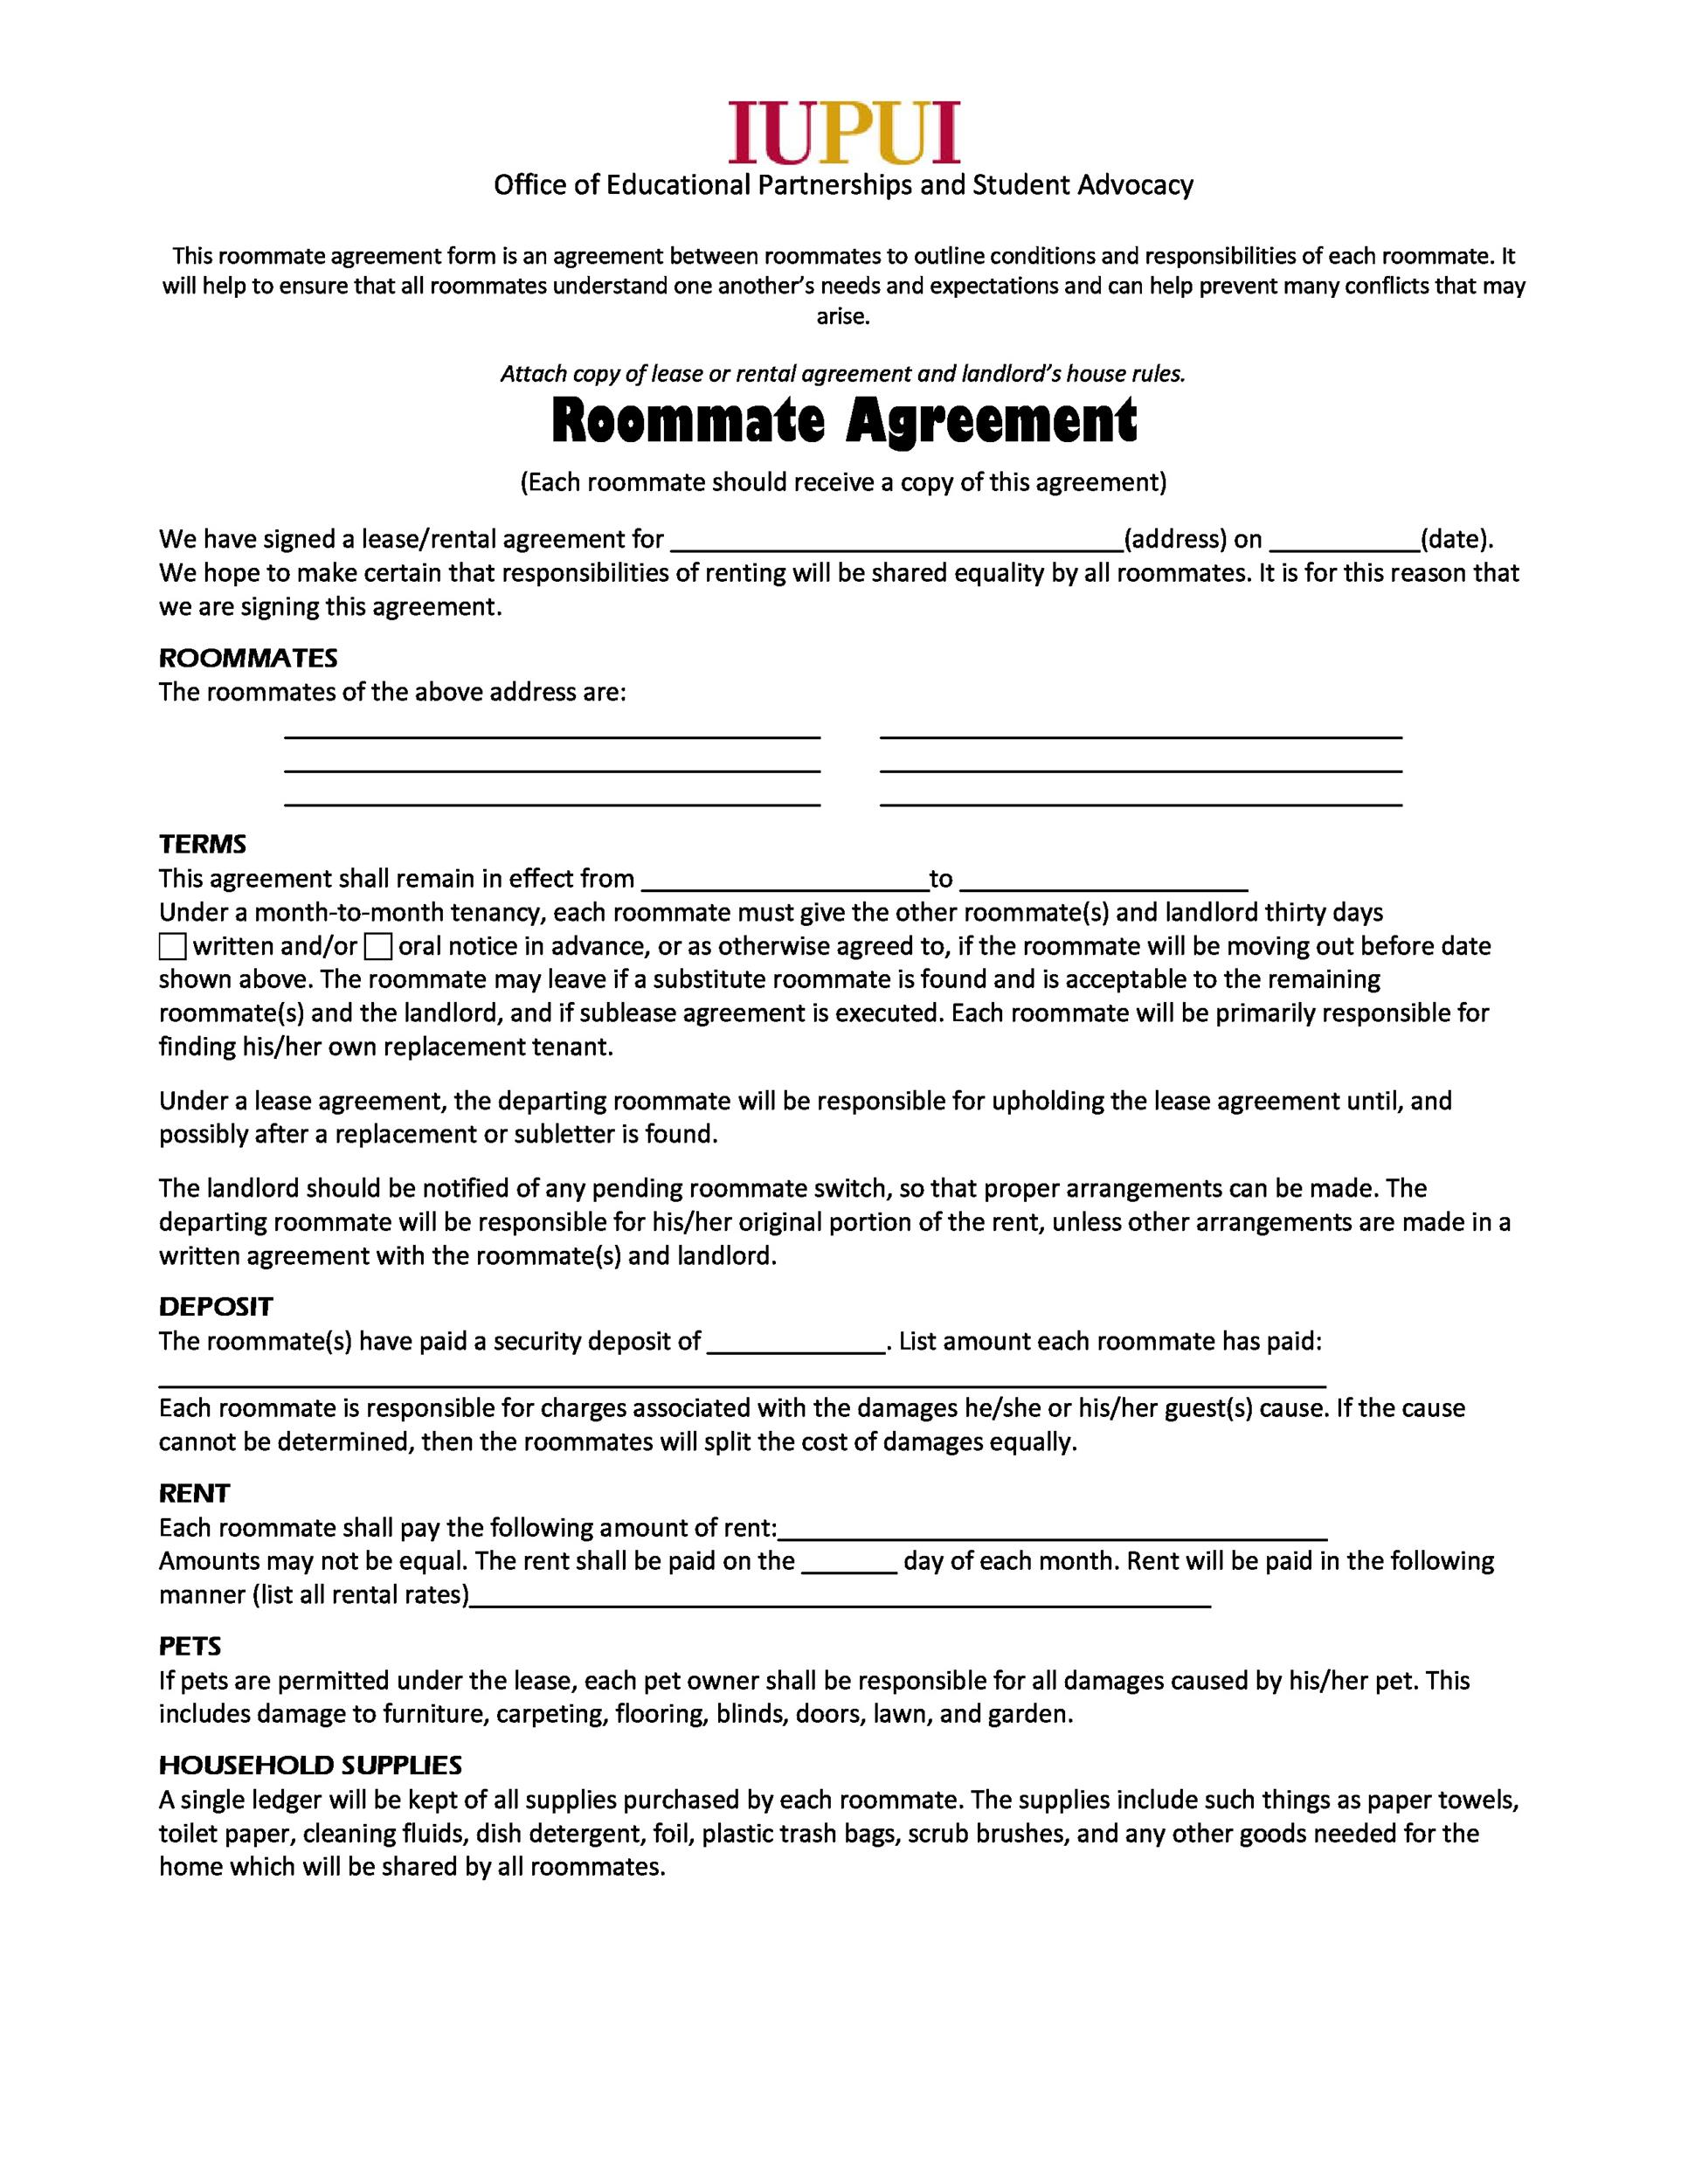 Roommate Agreement Template | 40 Free Roommate Agreement Templates Forms Word Pdf